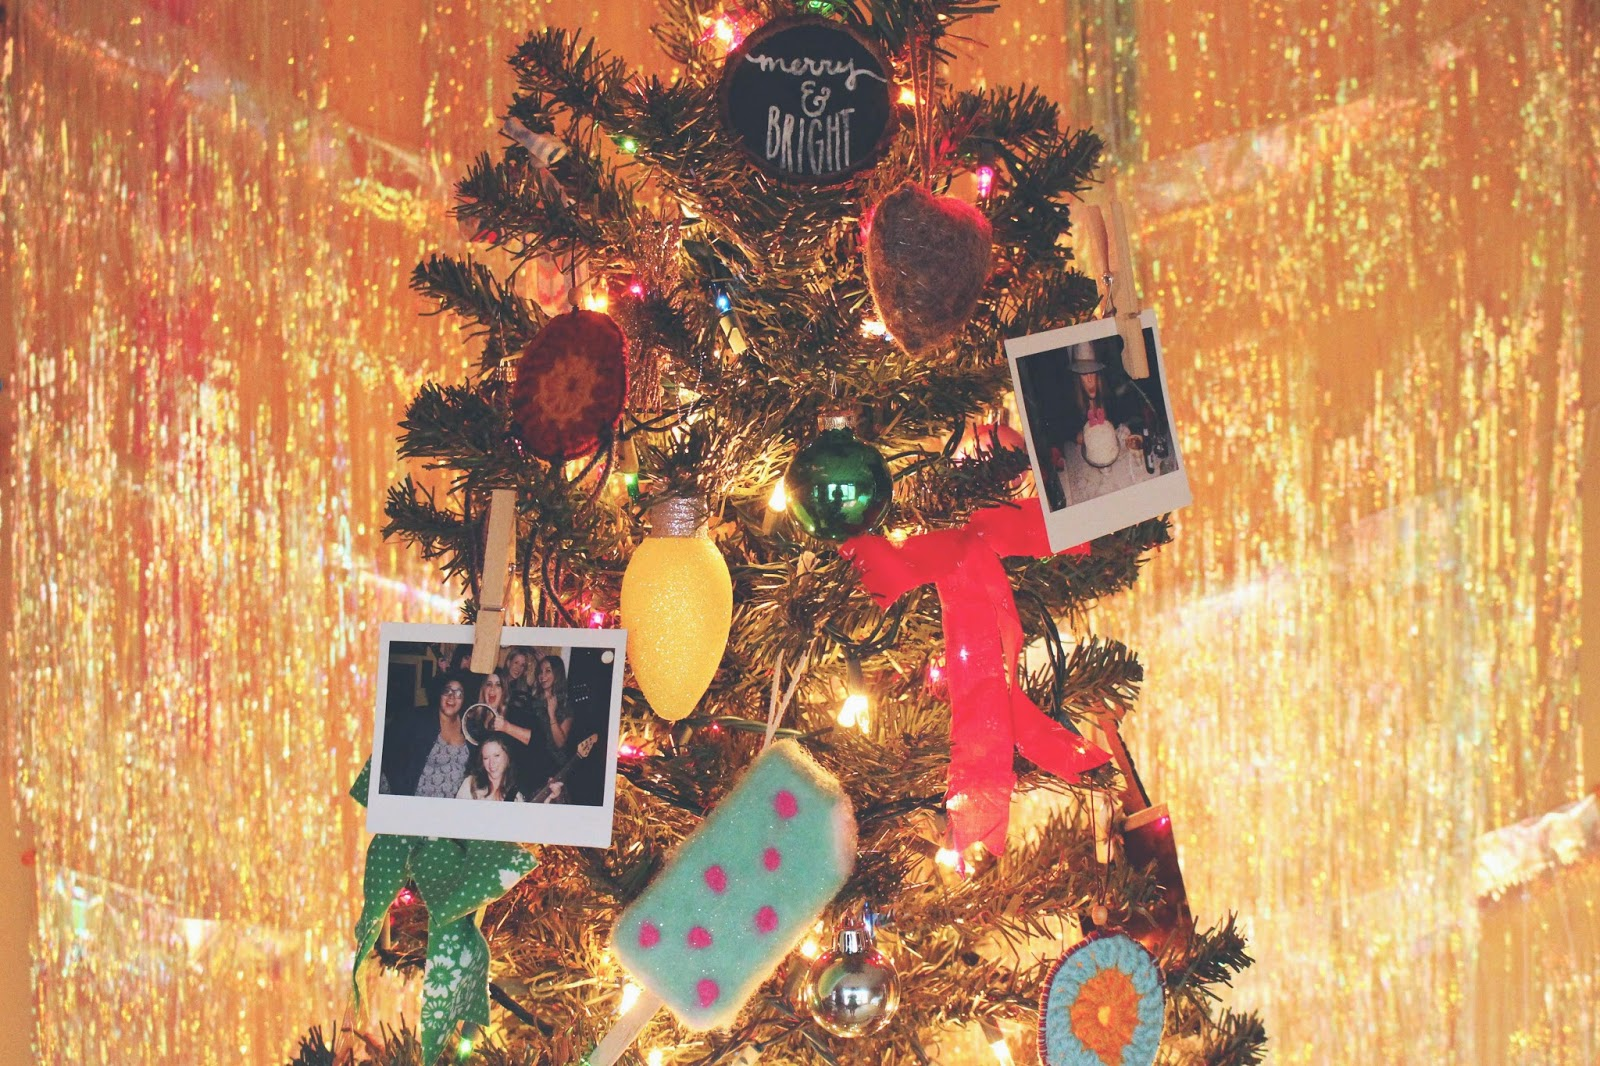 Instant Film On A Christmas Tree